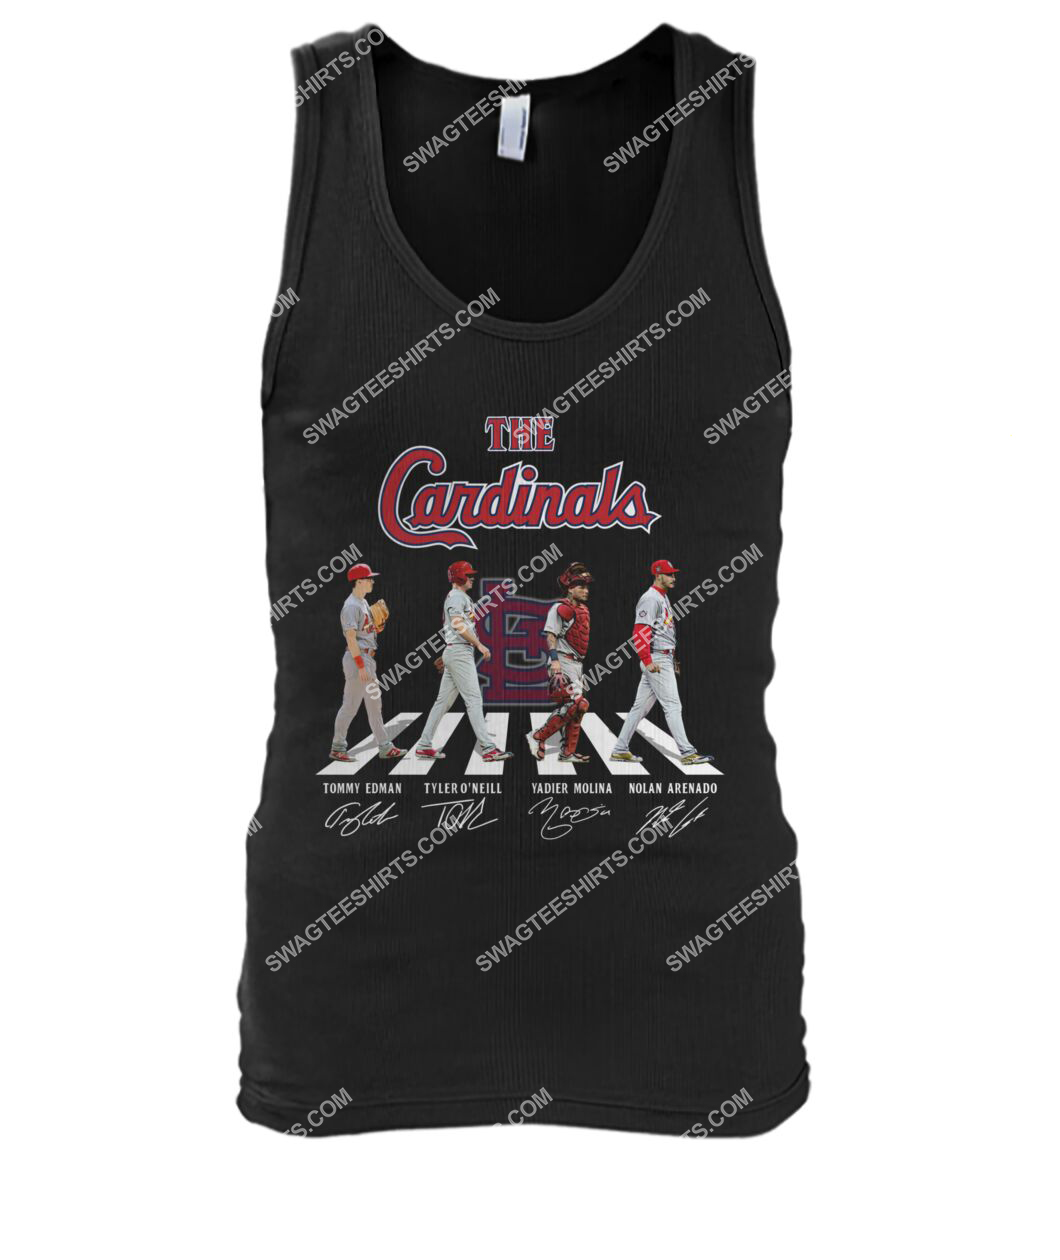 abbey road the st louis cardinals signatures tank top 1